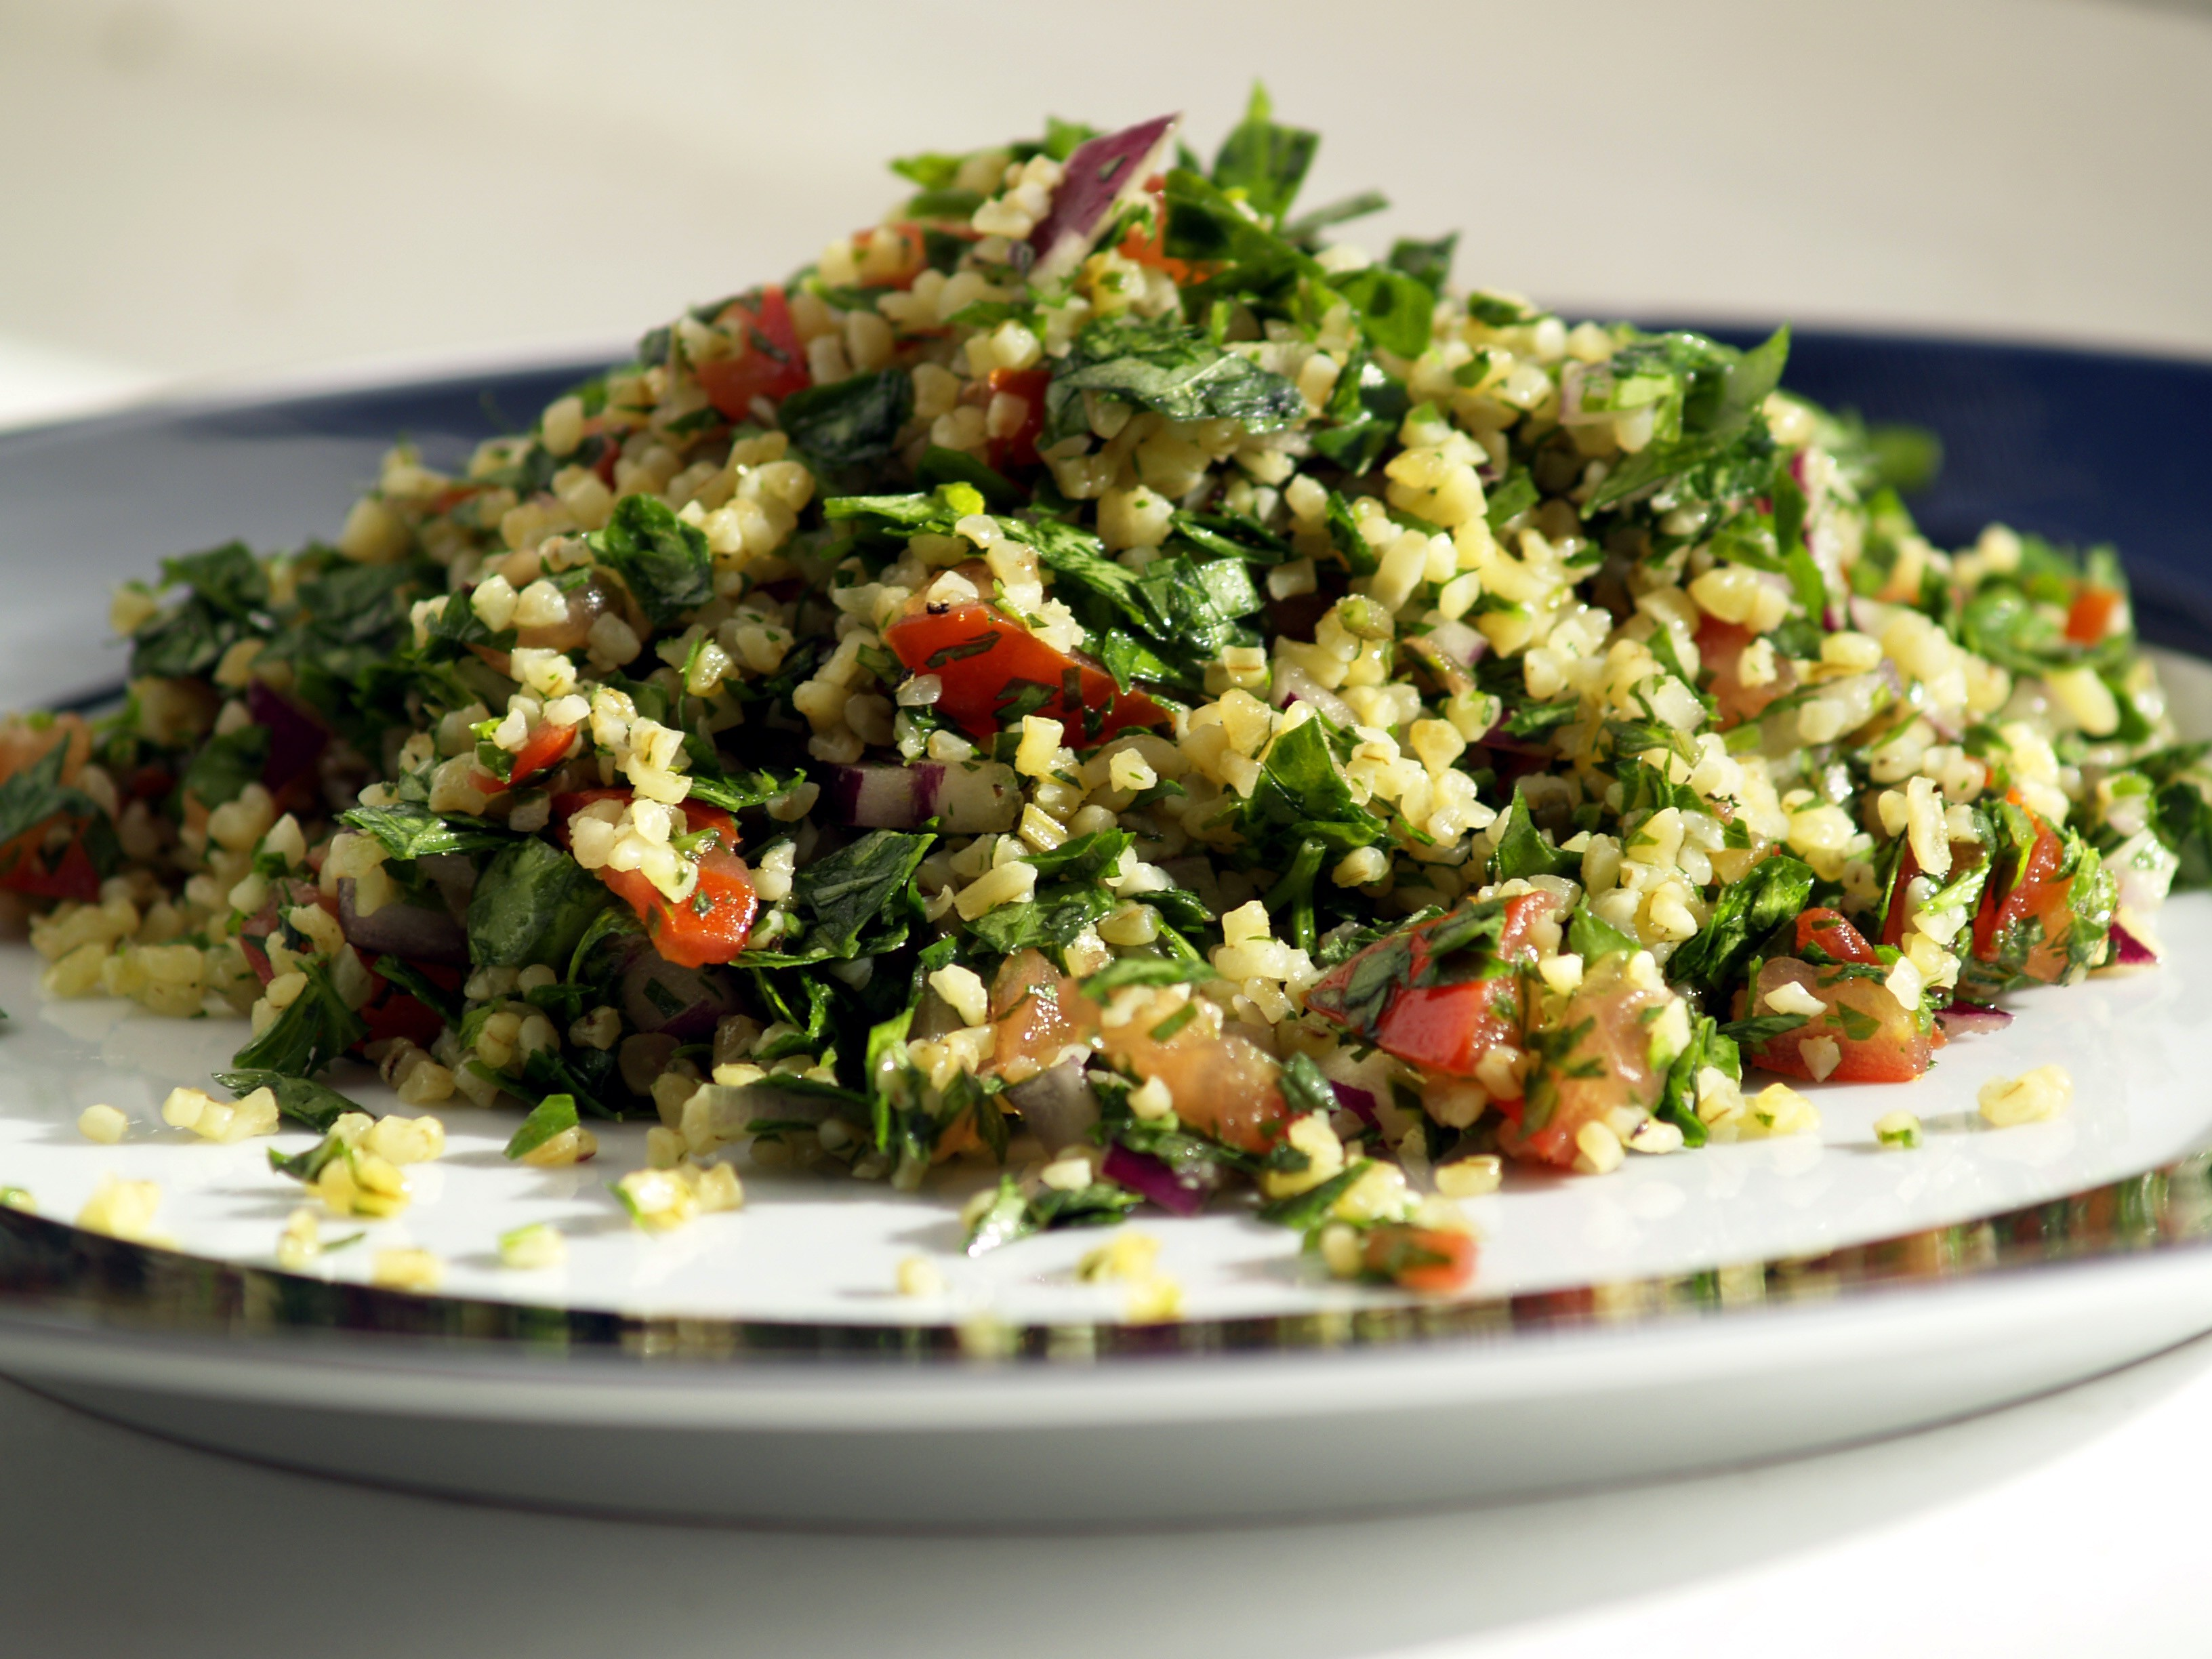 [Tabbouleh] | © [cyclonebill]/[source,Flickr]